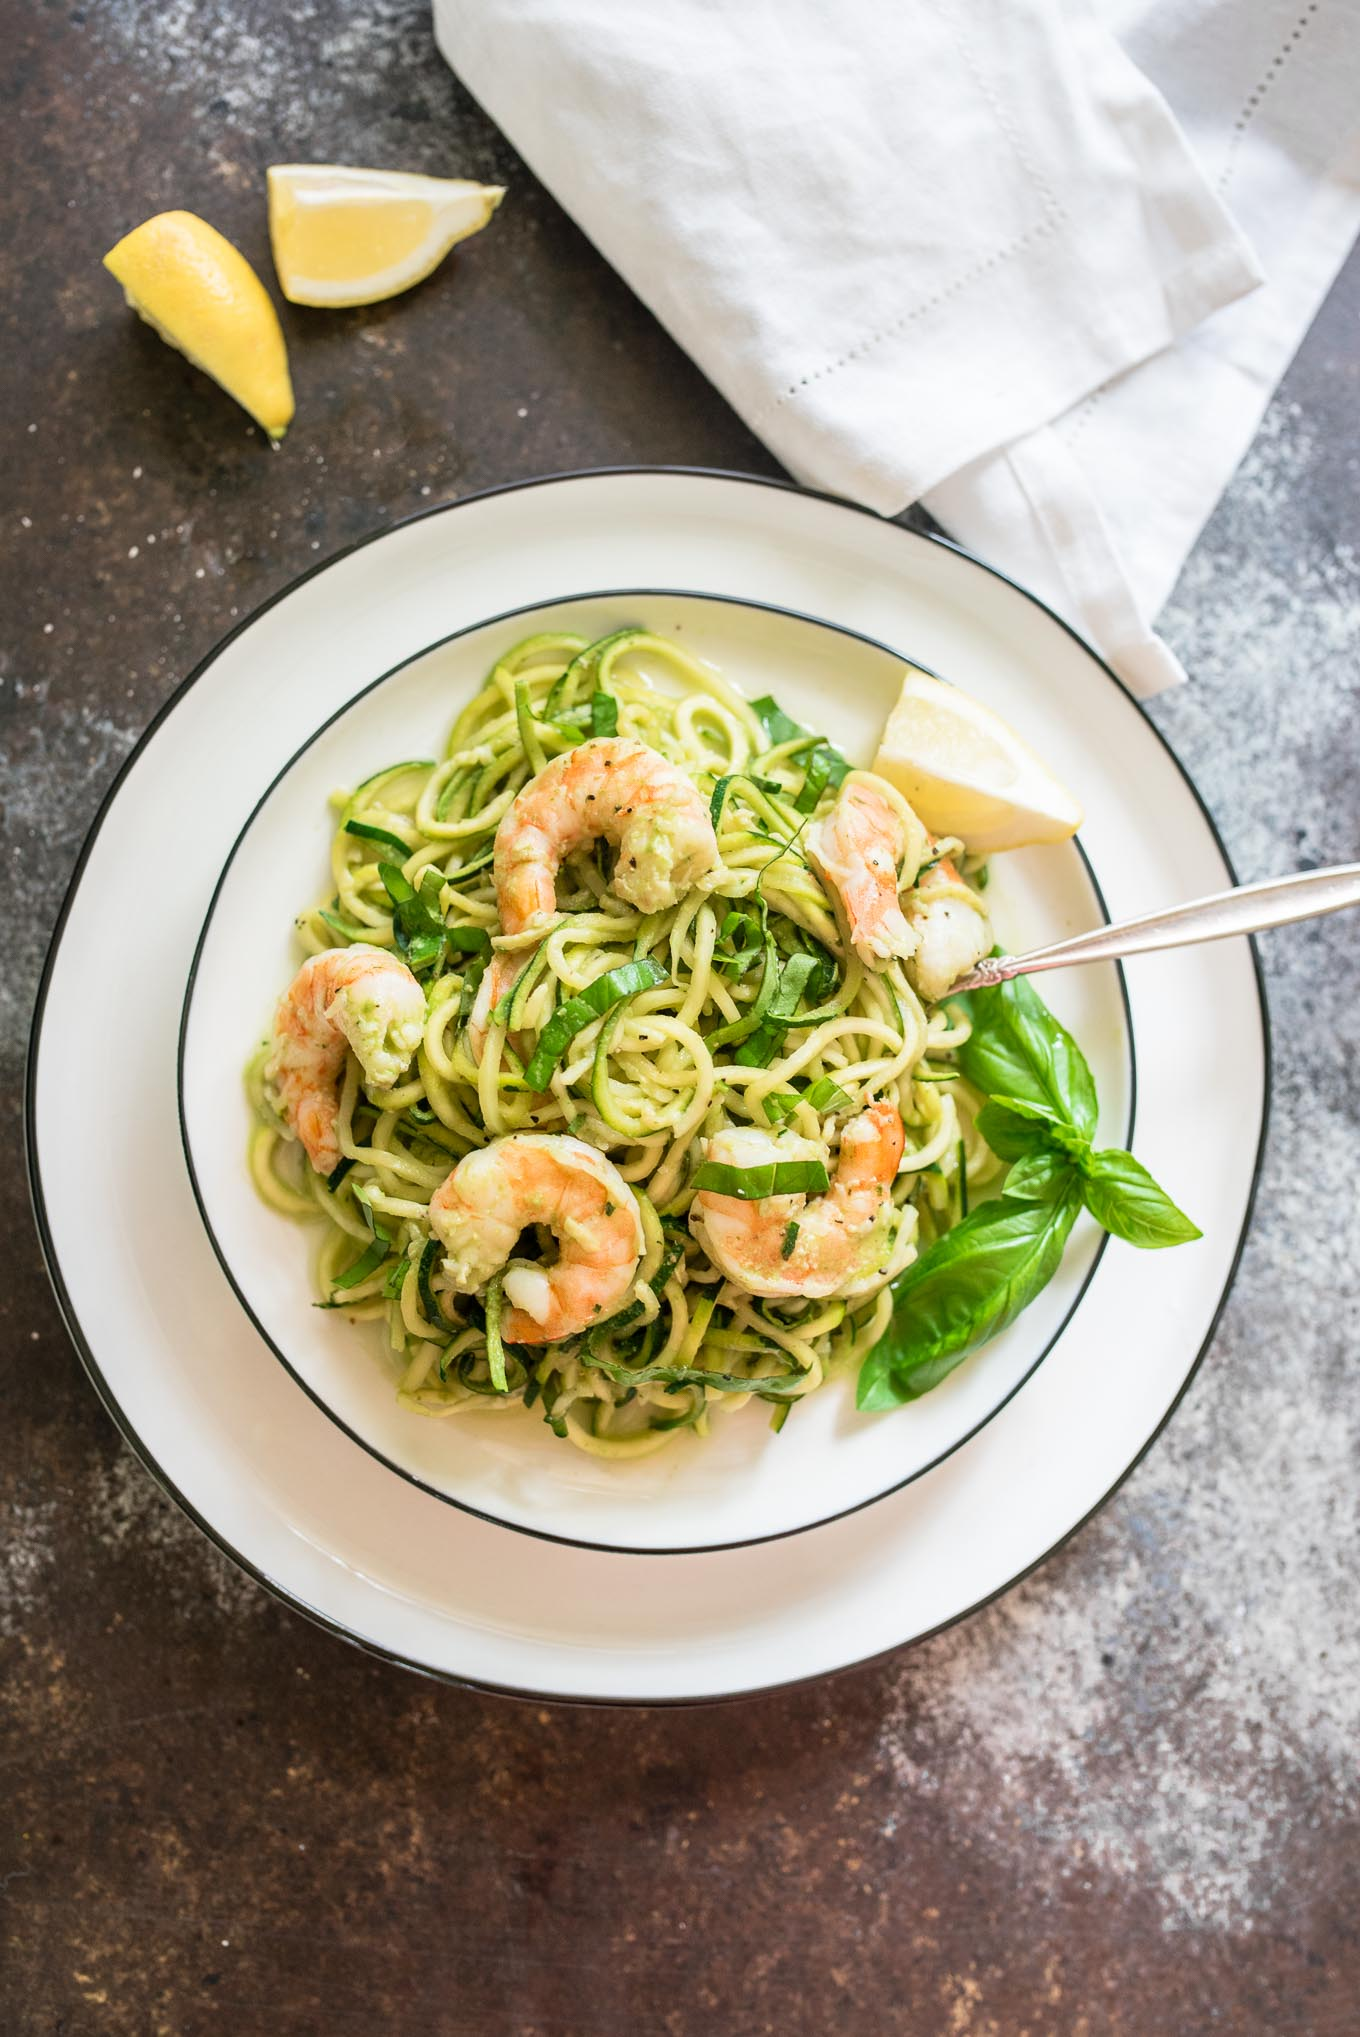 Creamy Basil Zucchini Noodles with Shrimp is a light and healthy dish, naturally gluten free, perfect for those light summer meals.